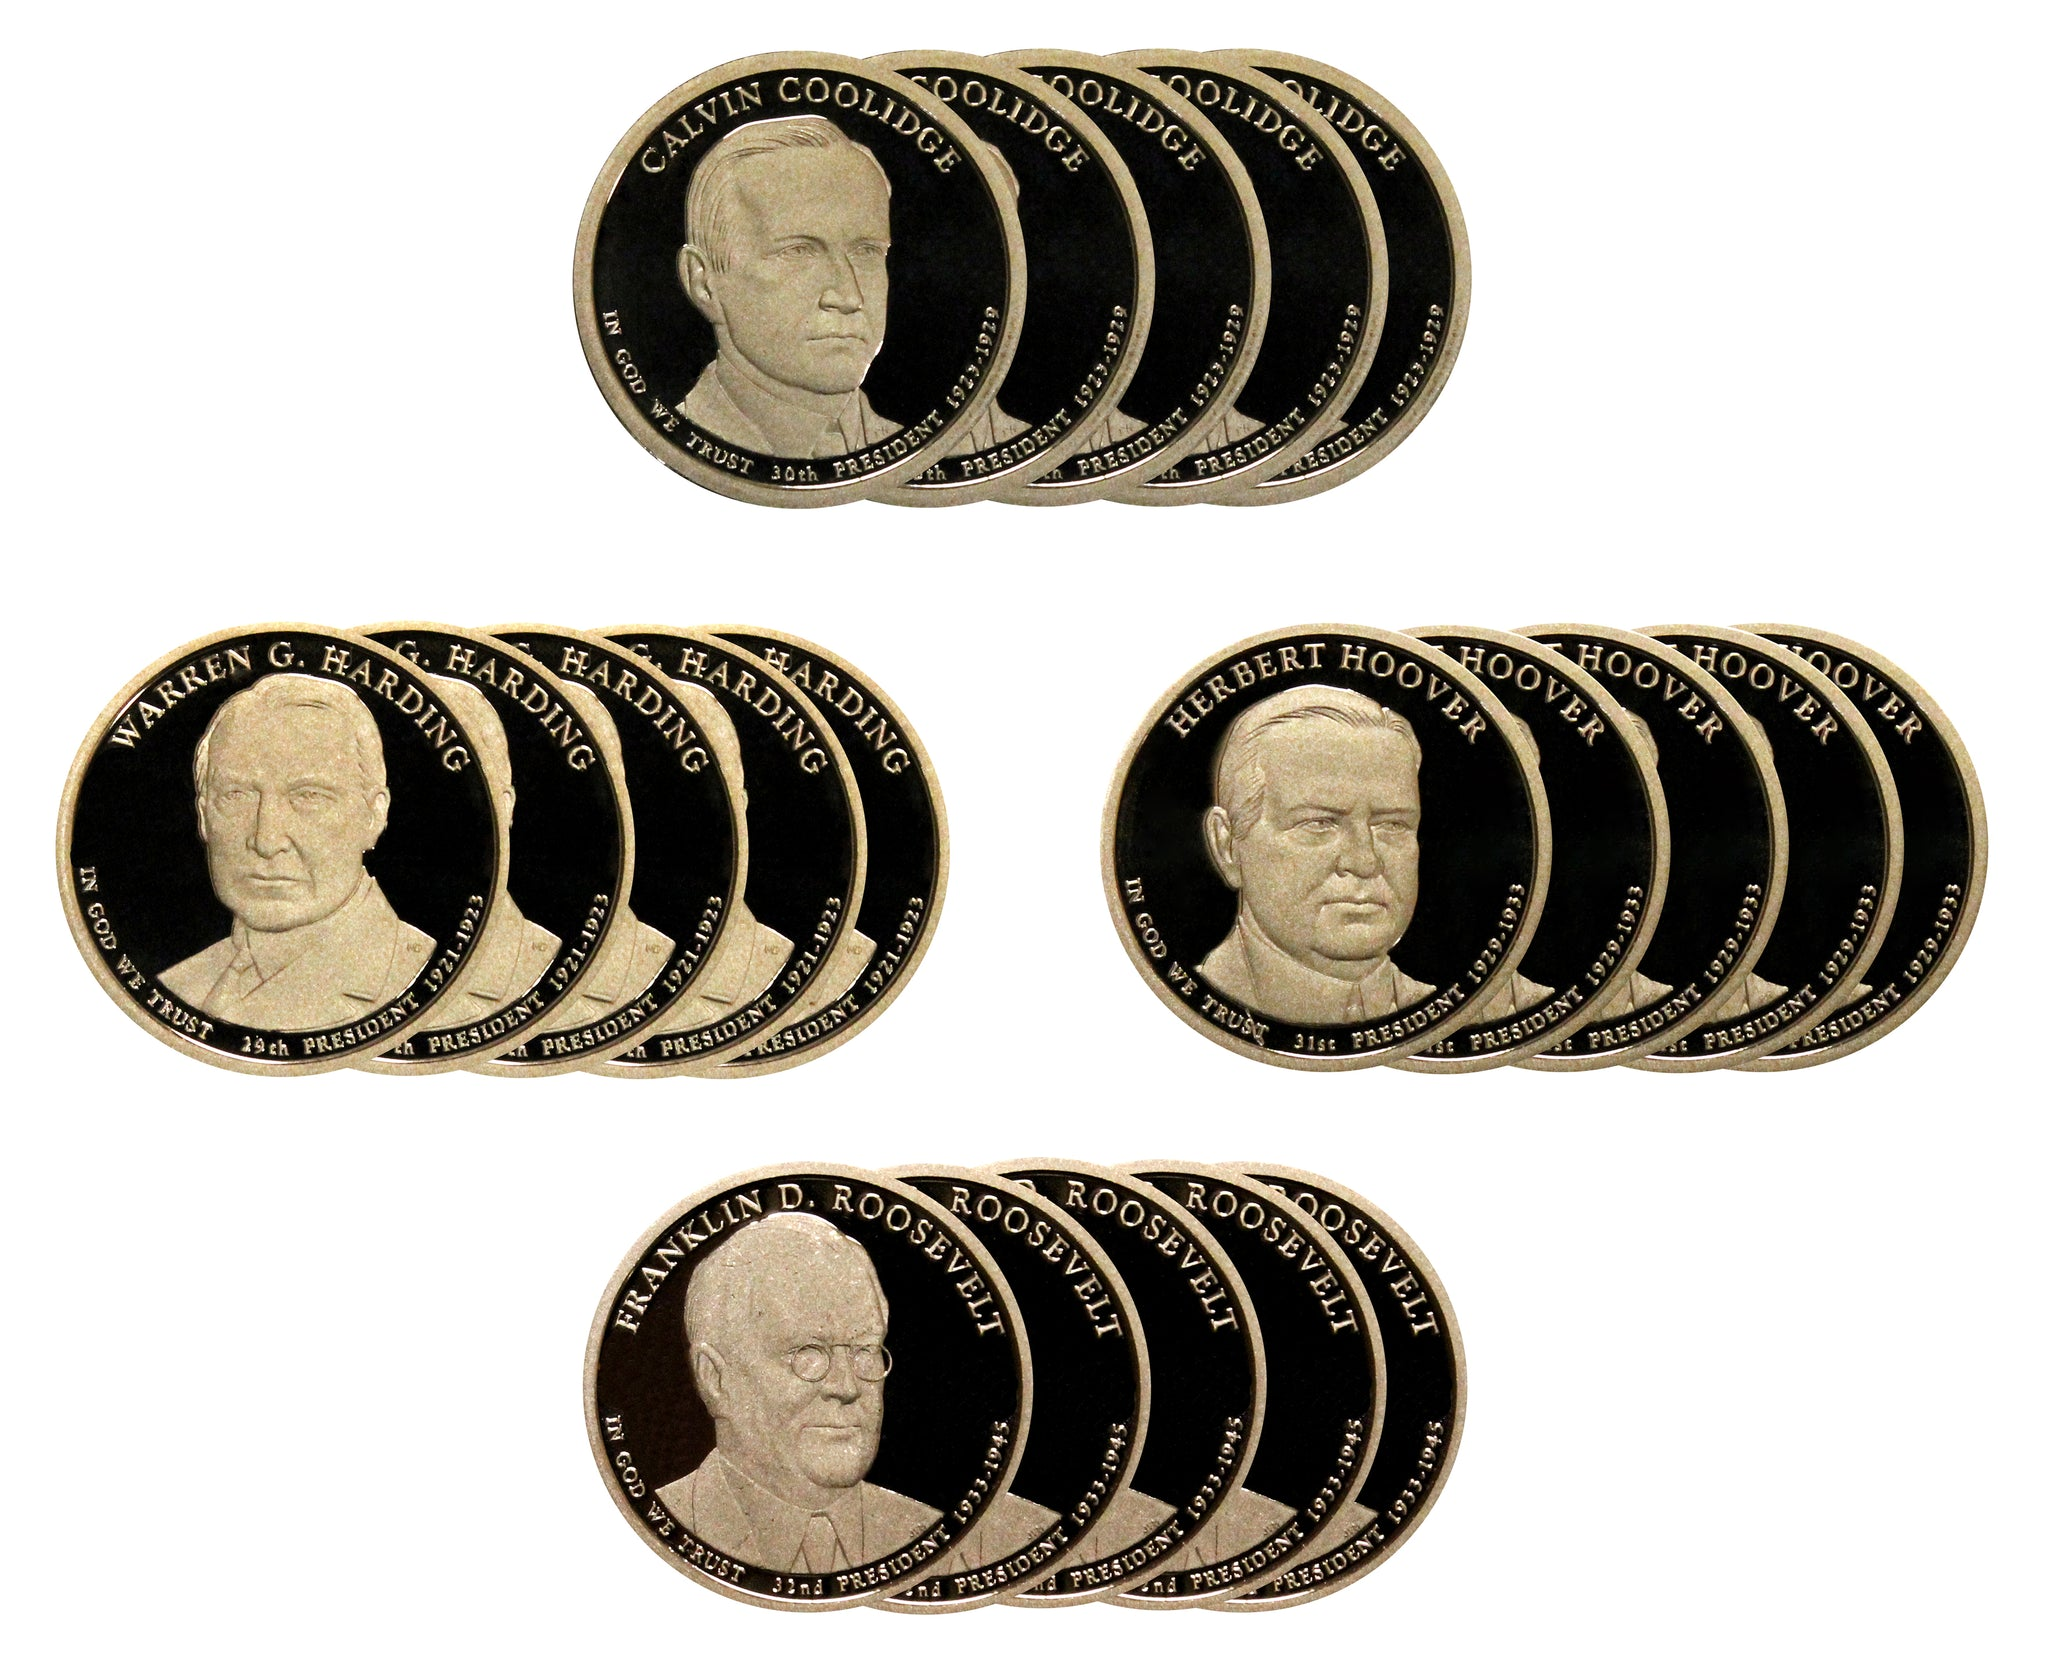 2014 S Presidential Dollar Proof Roll (20 Coins) Roosevelt Coolidge Harding Hoover